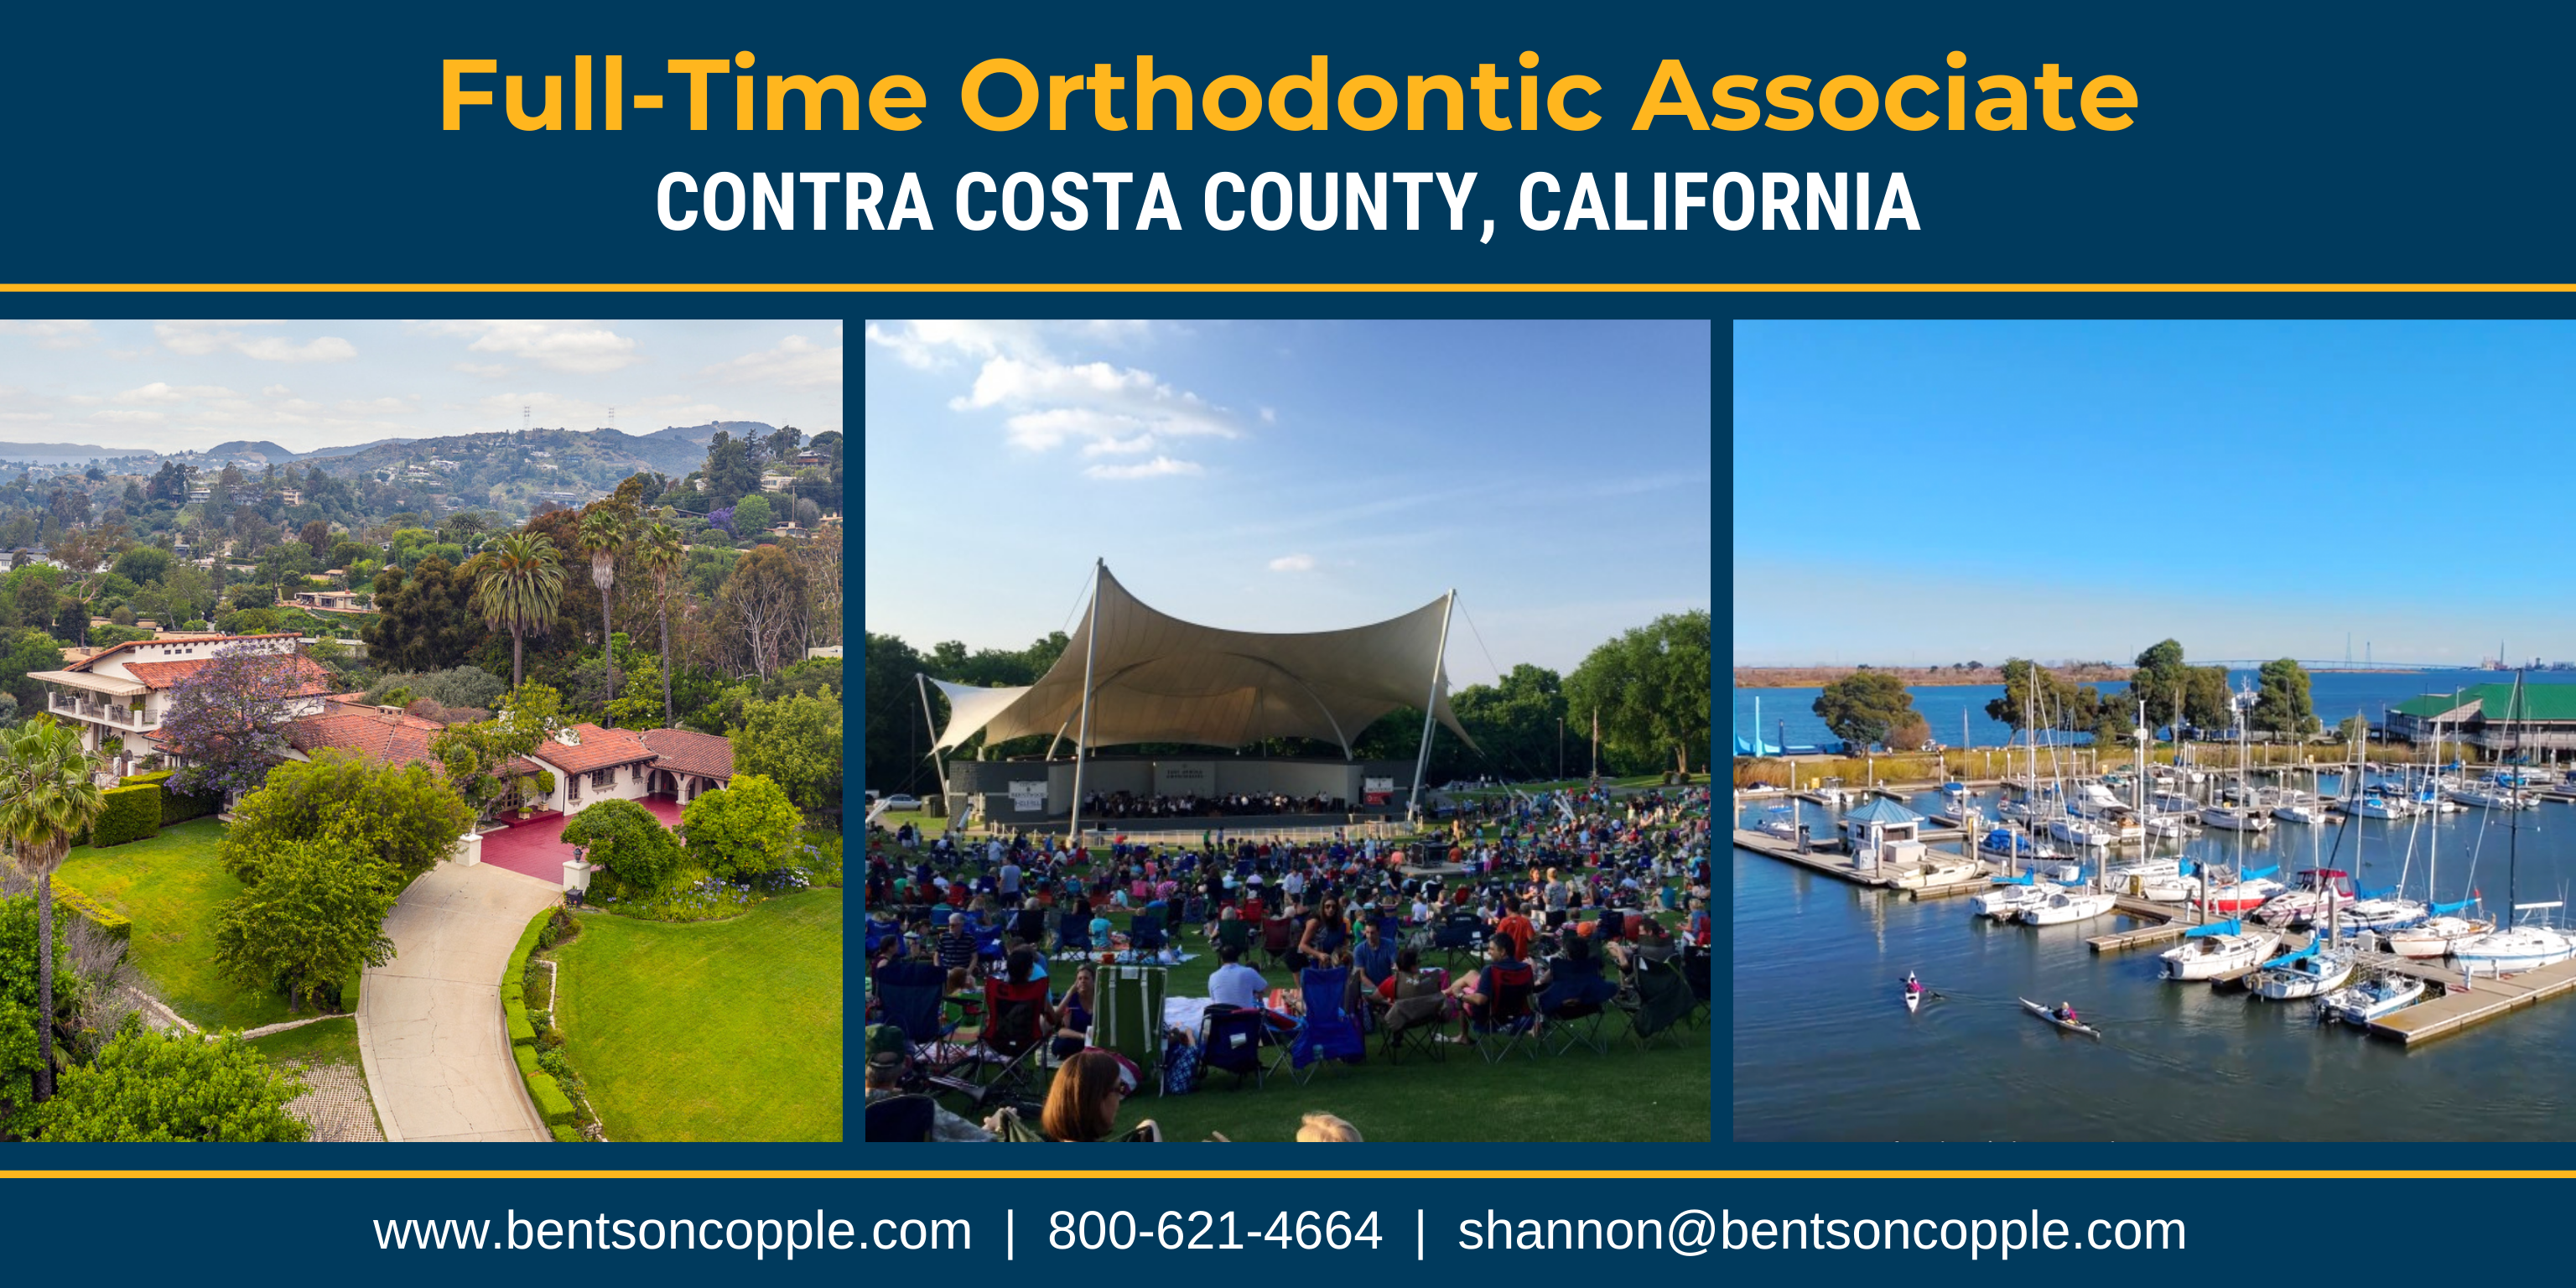 Full-Time Orthodontic Associate Needed in Contra Costa County, California